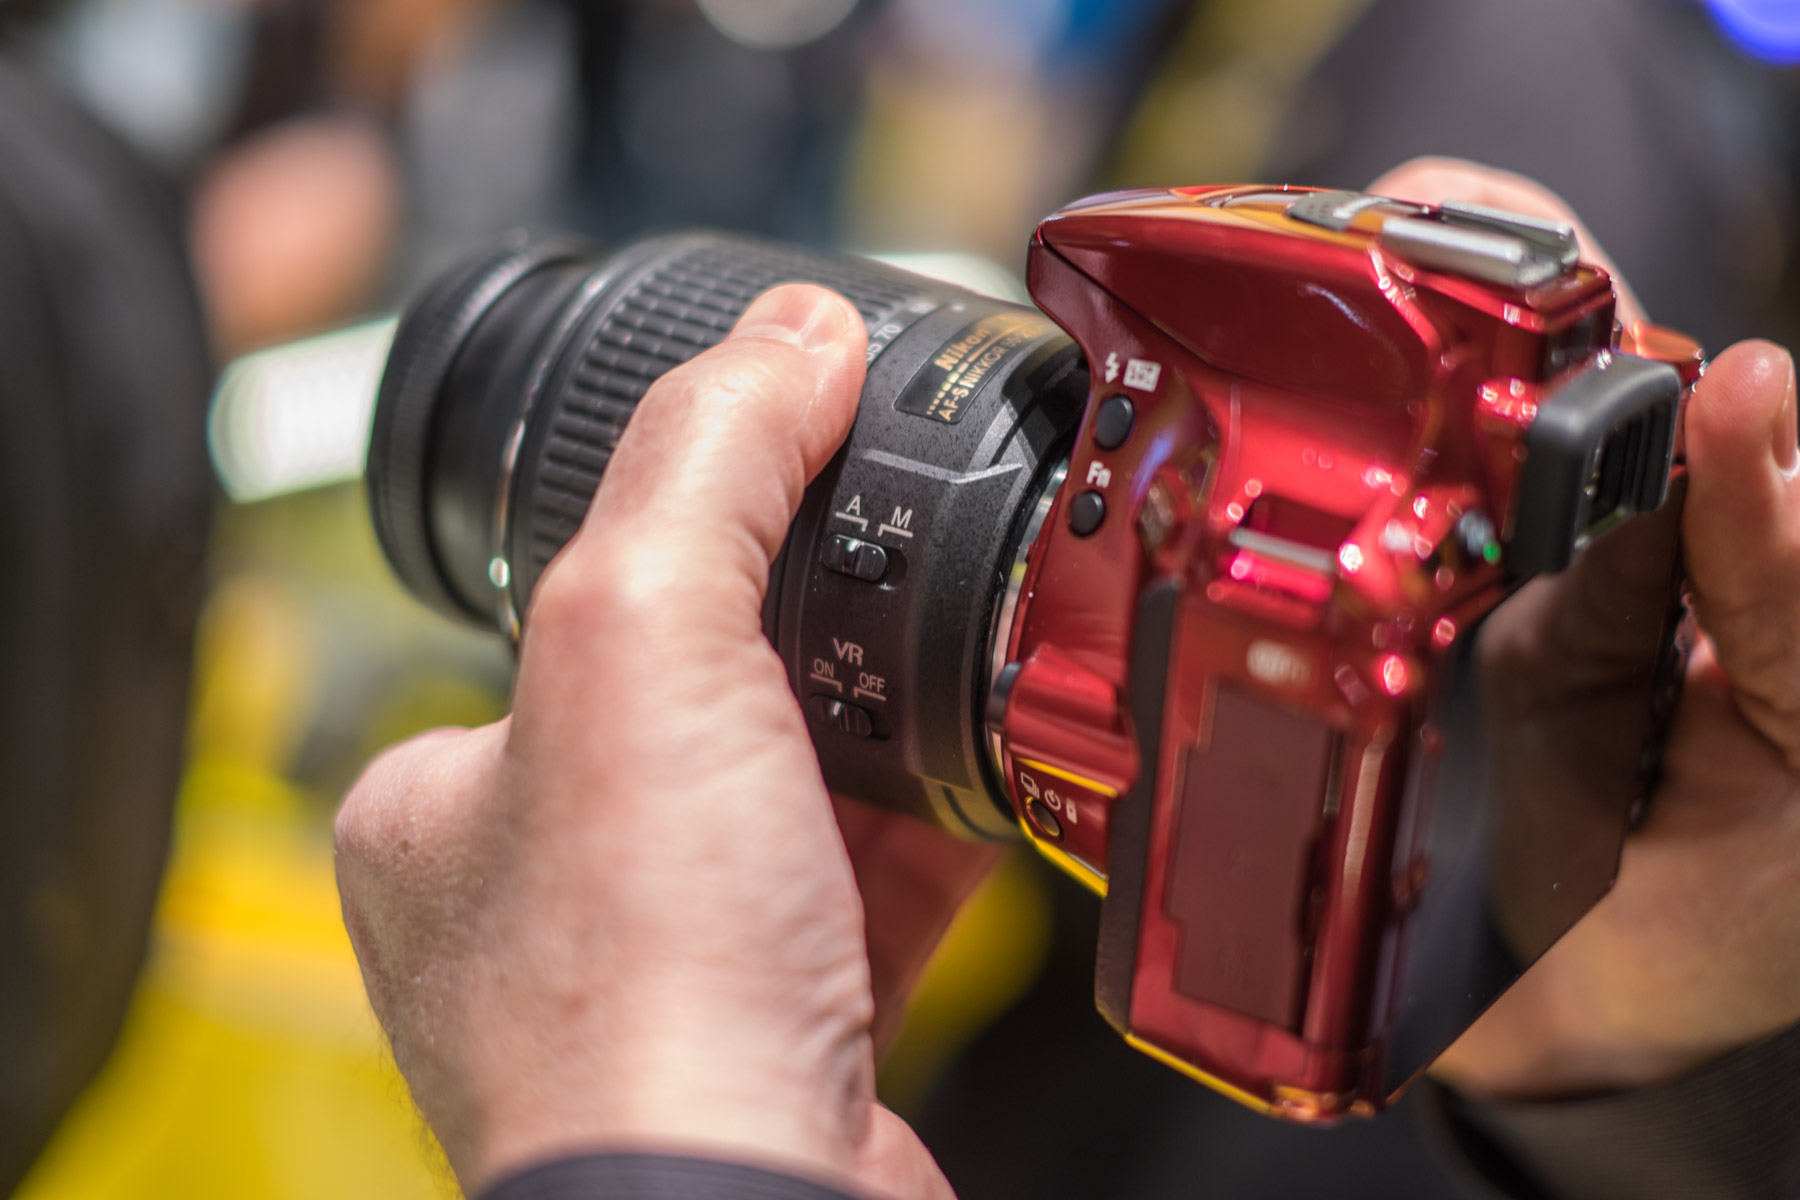 The 5 key things you need to know about the Nikon D5500